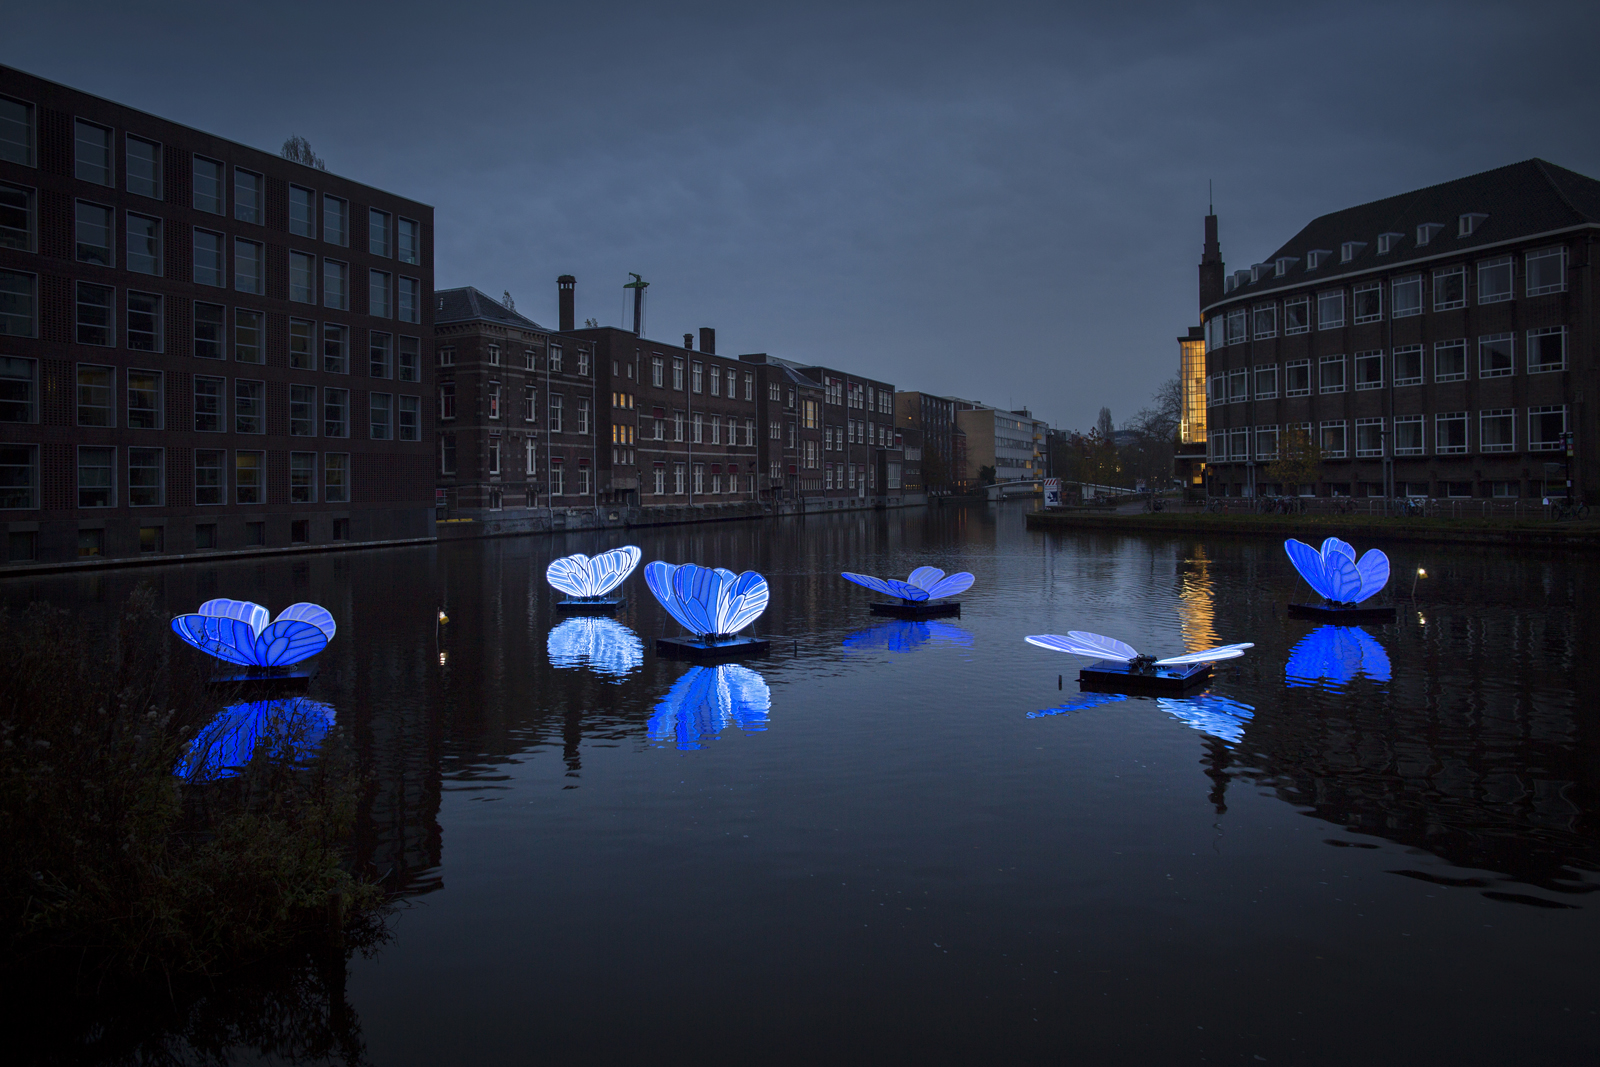 8th Annual Light Festival Illuminates Amsterdam with Glowing Sculptural Installations | Colossal